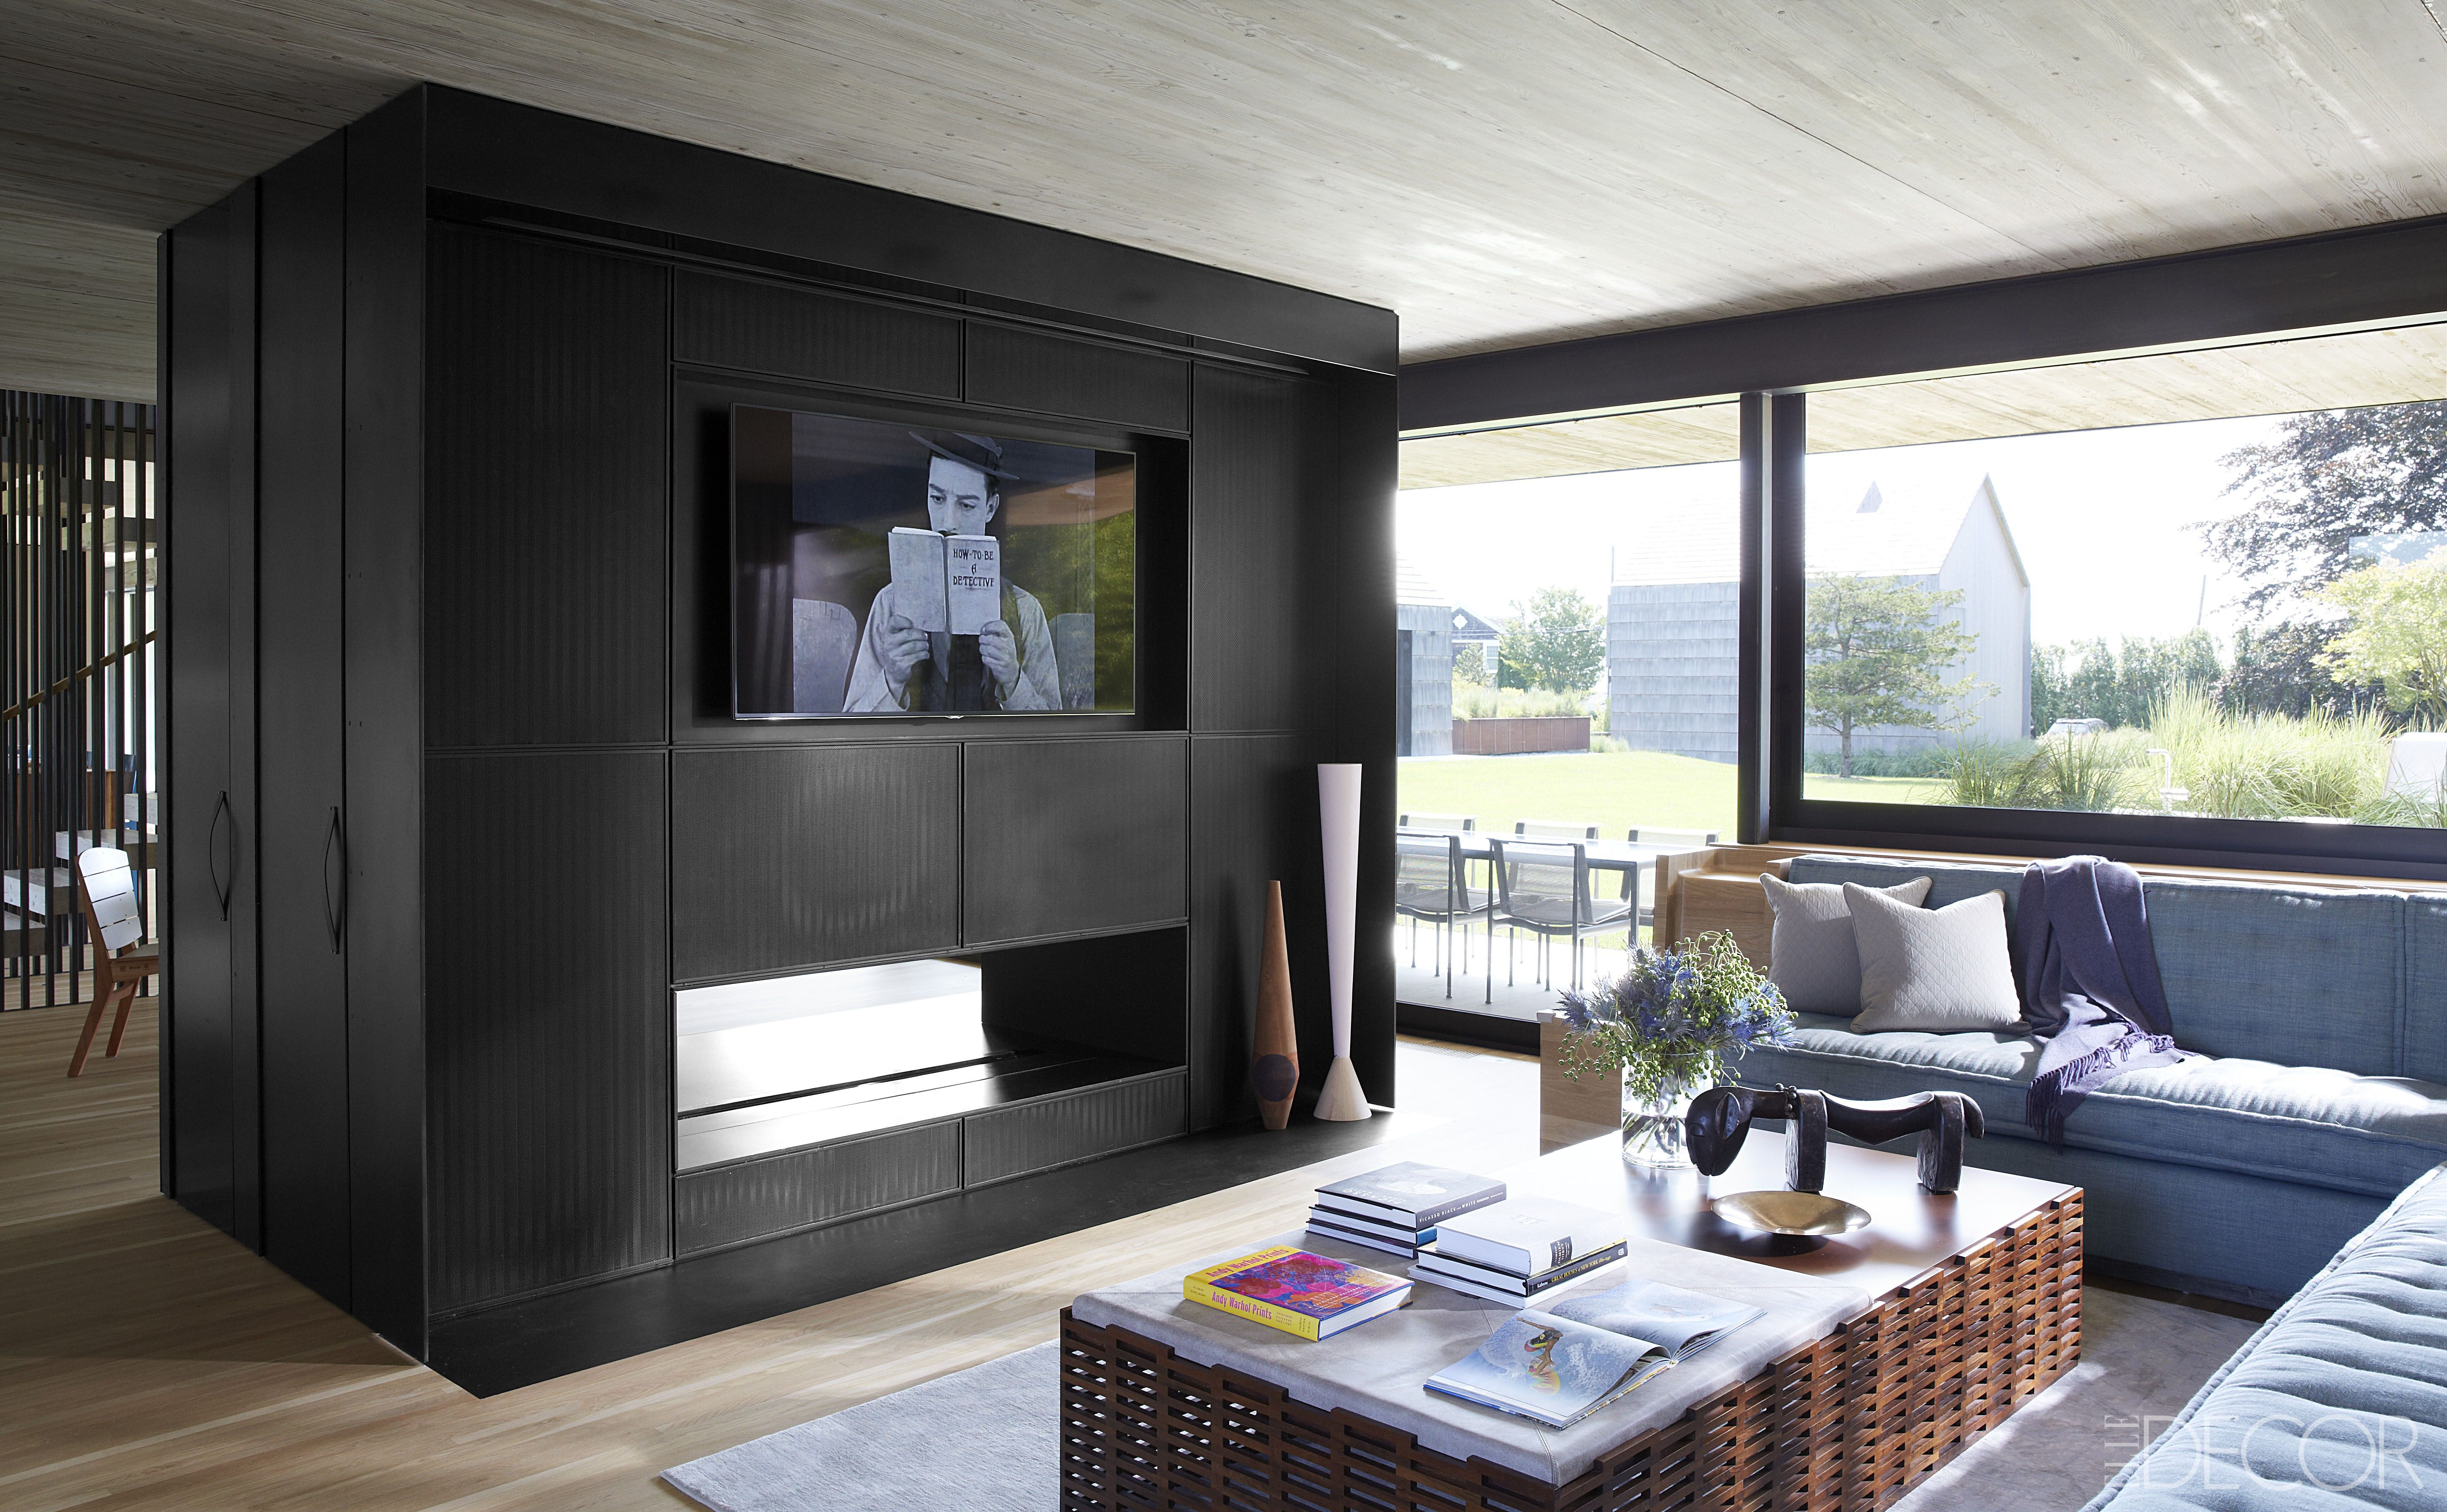 35 black room decorating ideas how to use black wall paint decor